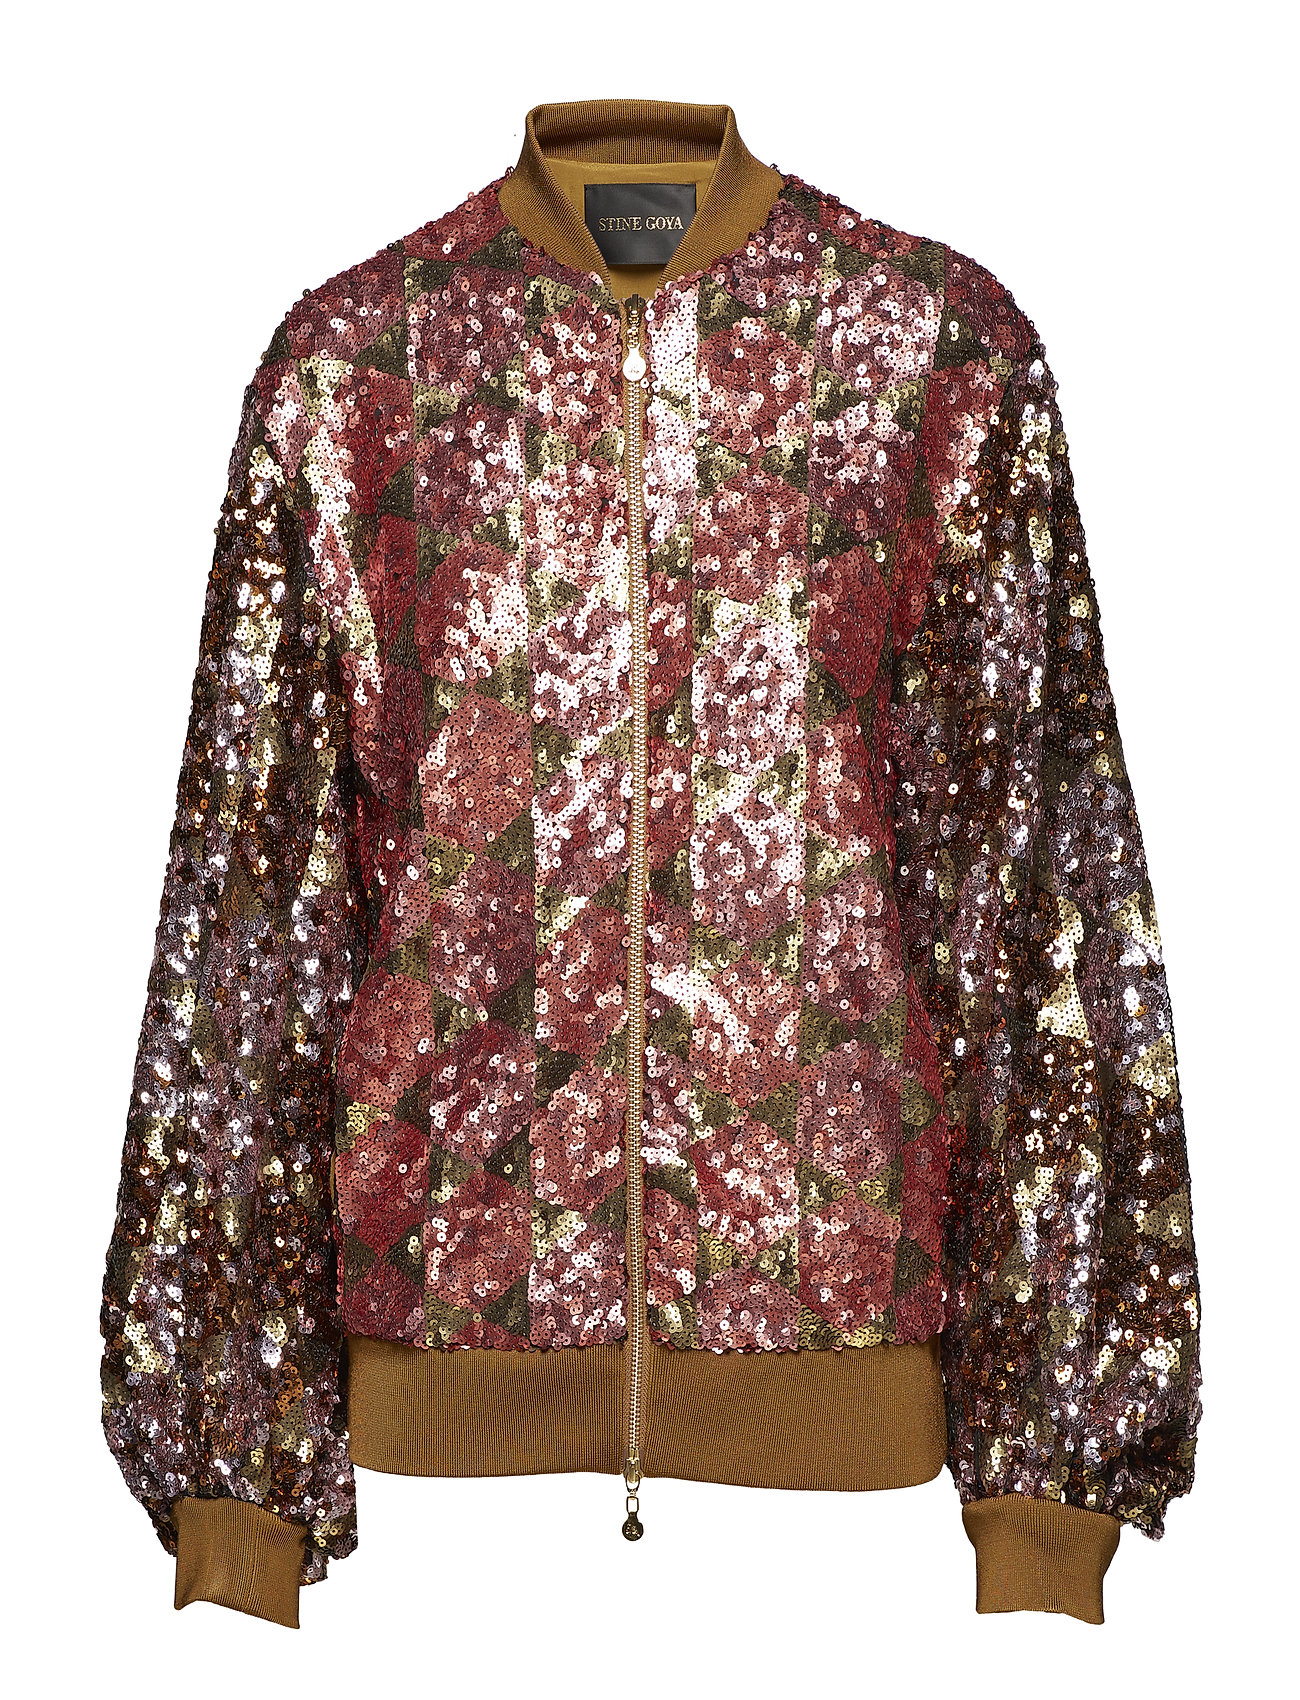 STINE GOYA Clive, 443 Sequins Jacket - HEXAGONS SOFT